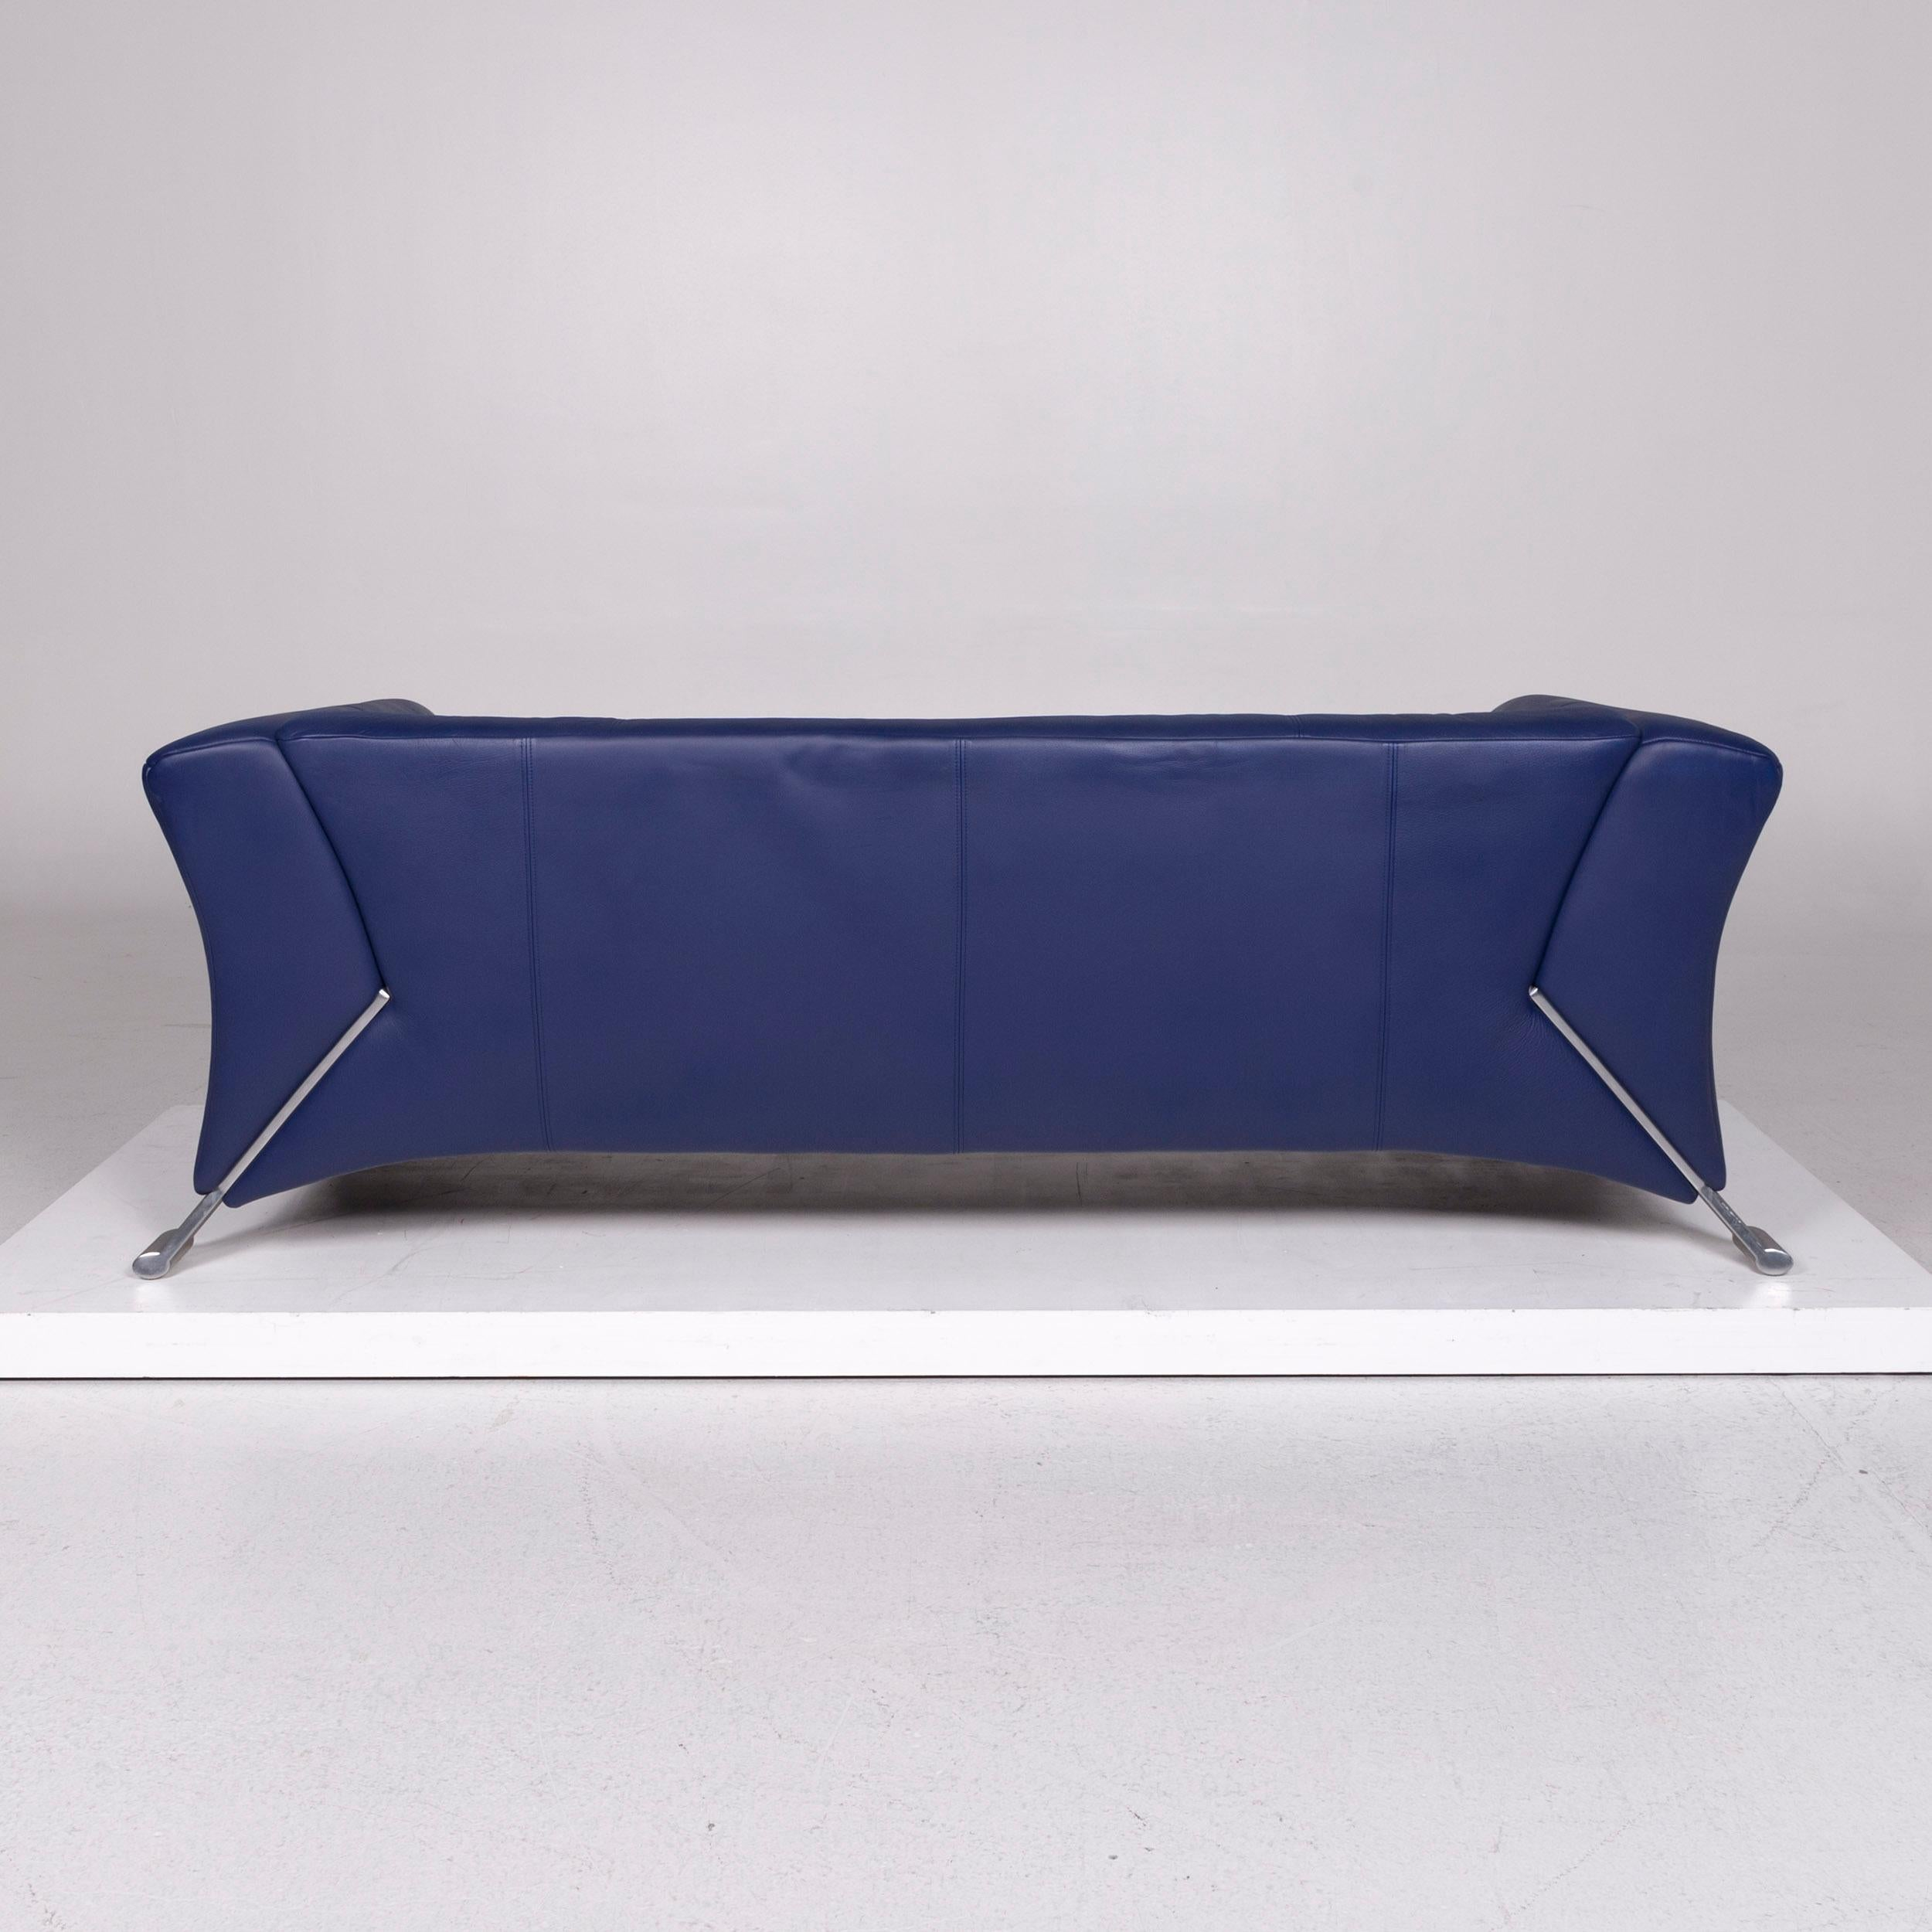 Rolf Benz 322 Leather Sofa Blue Three Seat Couch